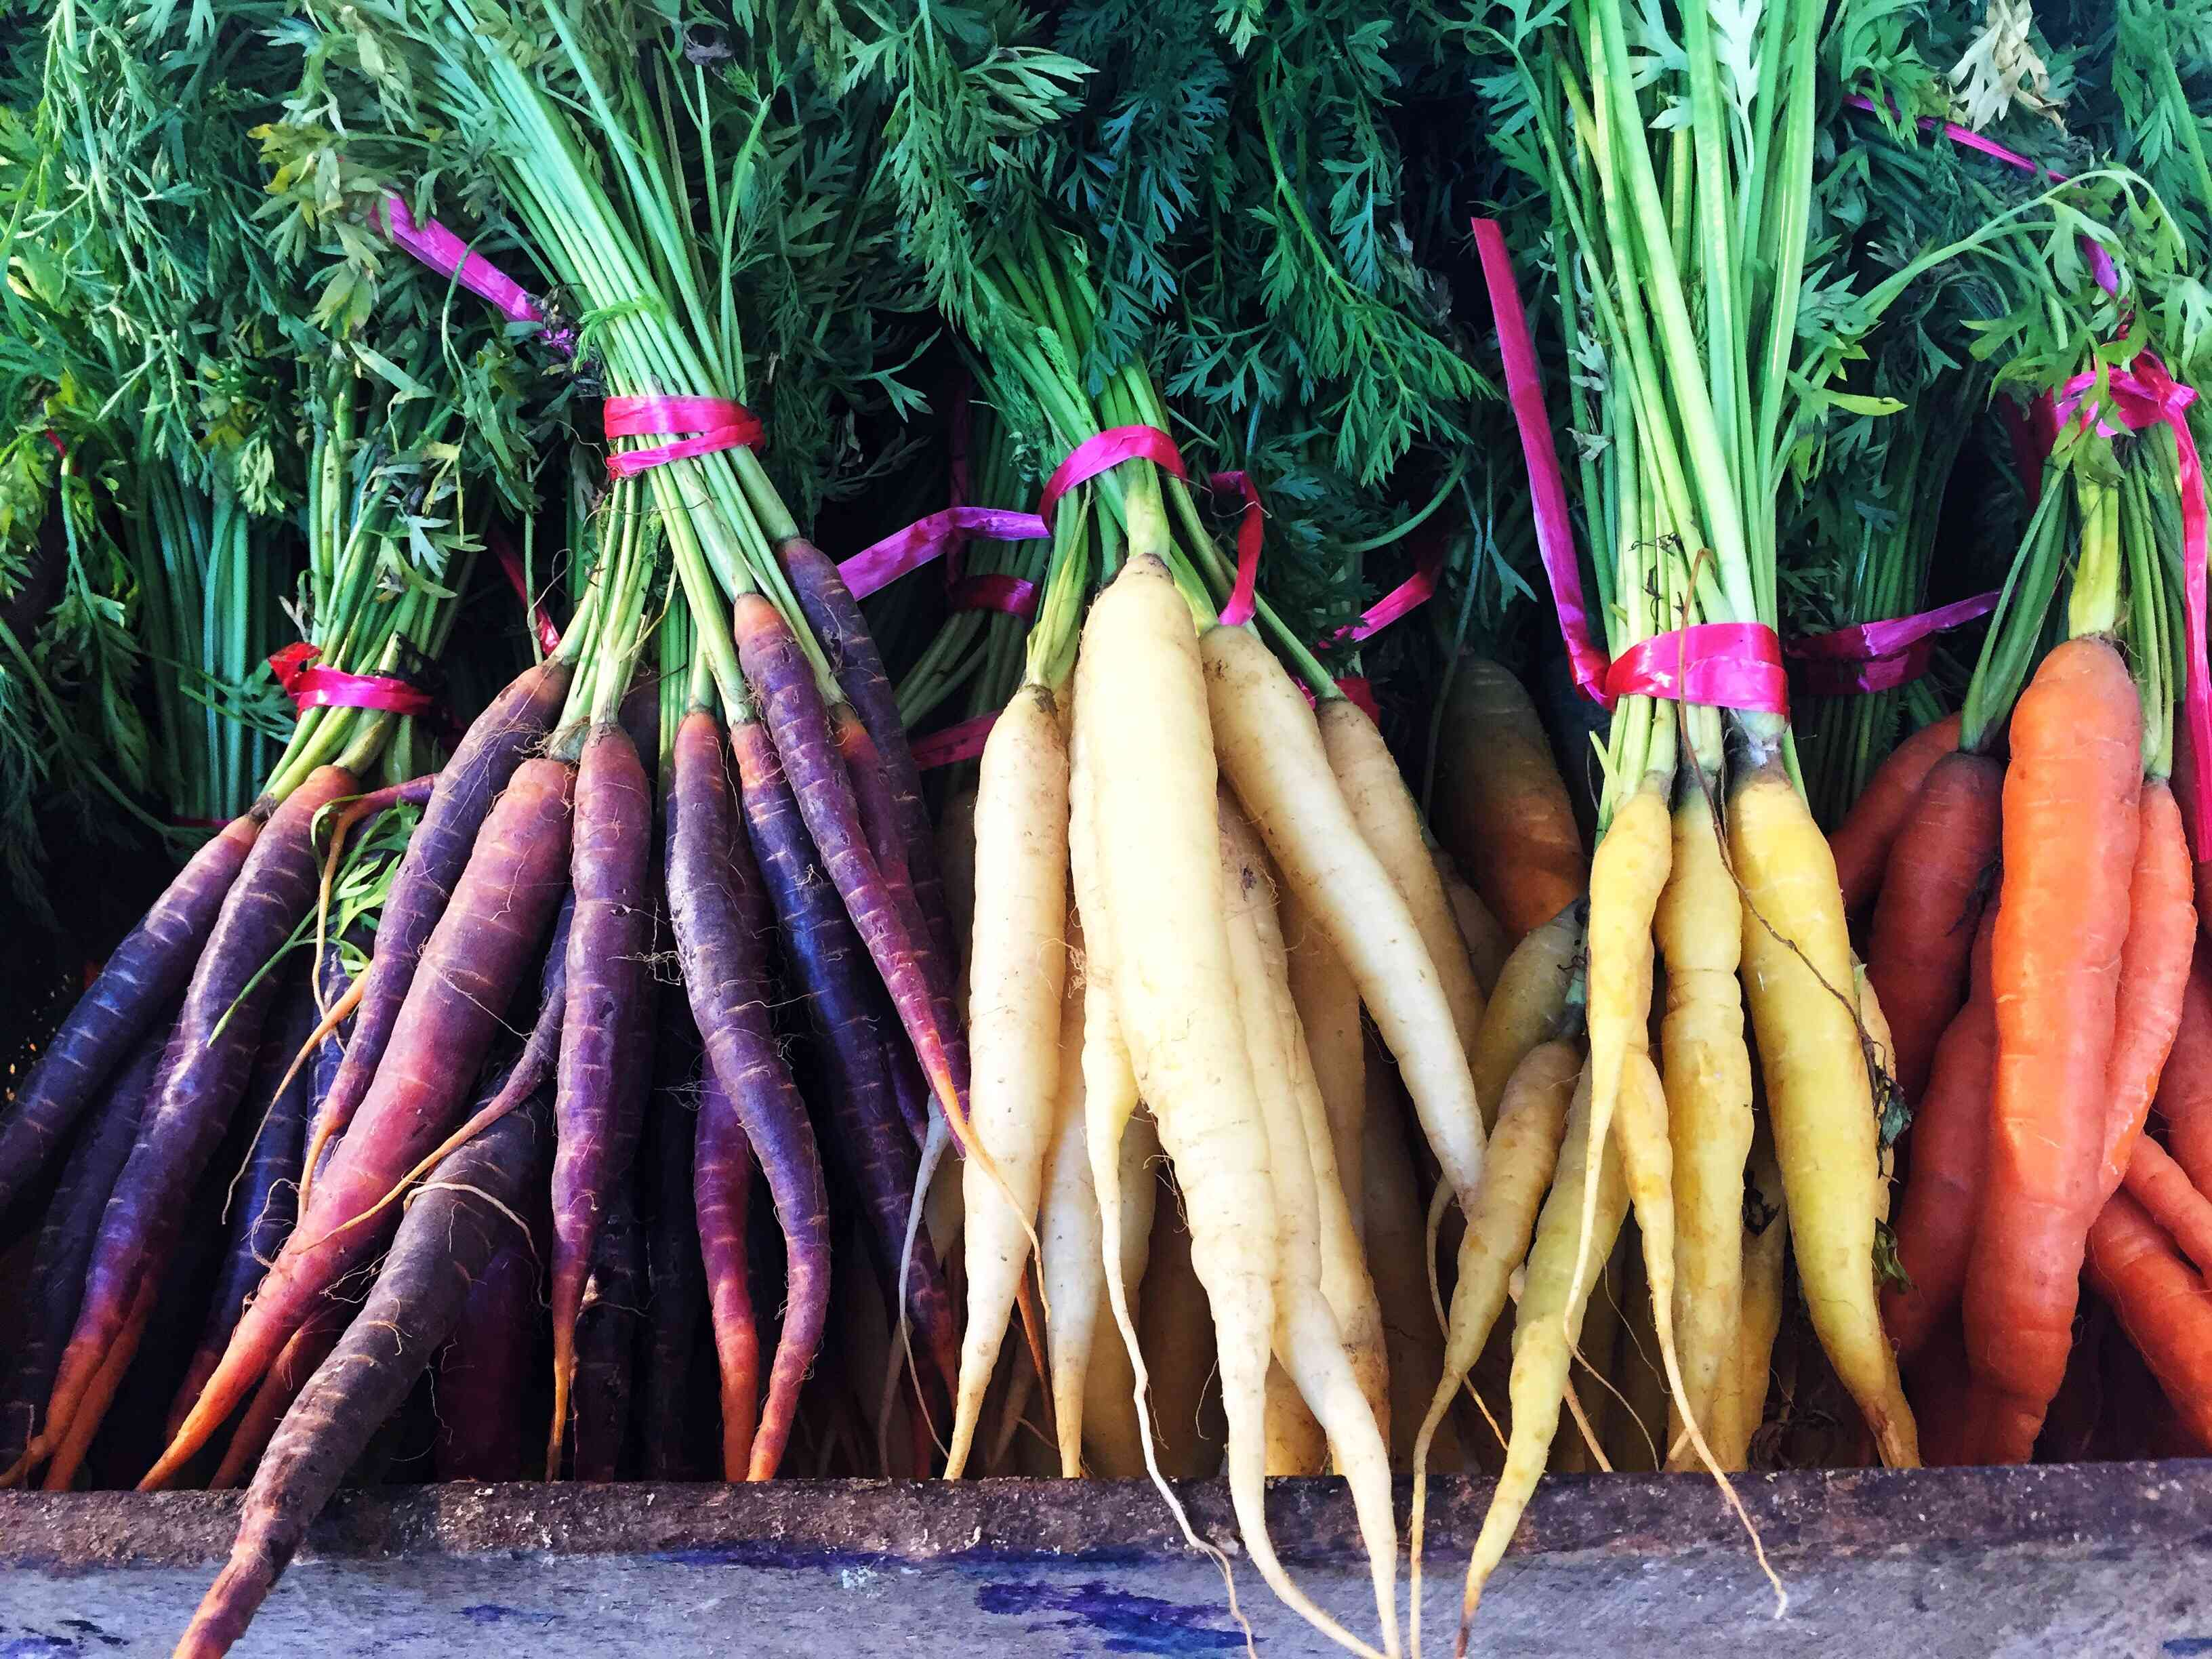 Bunches of purple, white, yellow, and orange carrots